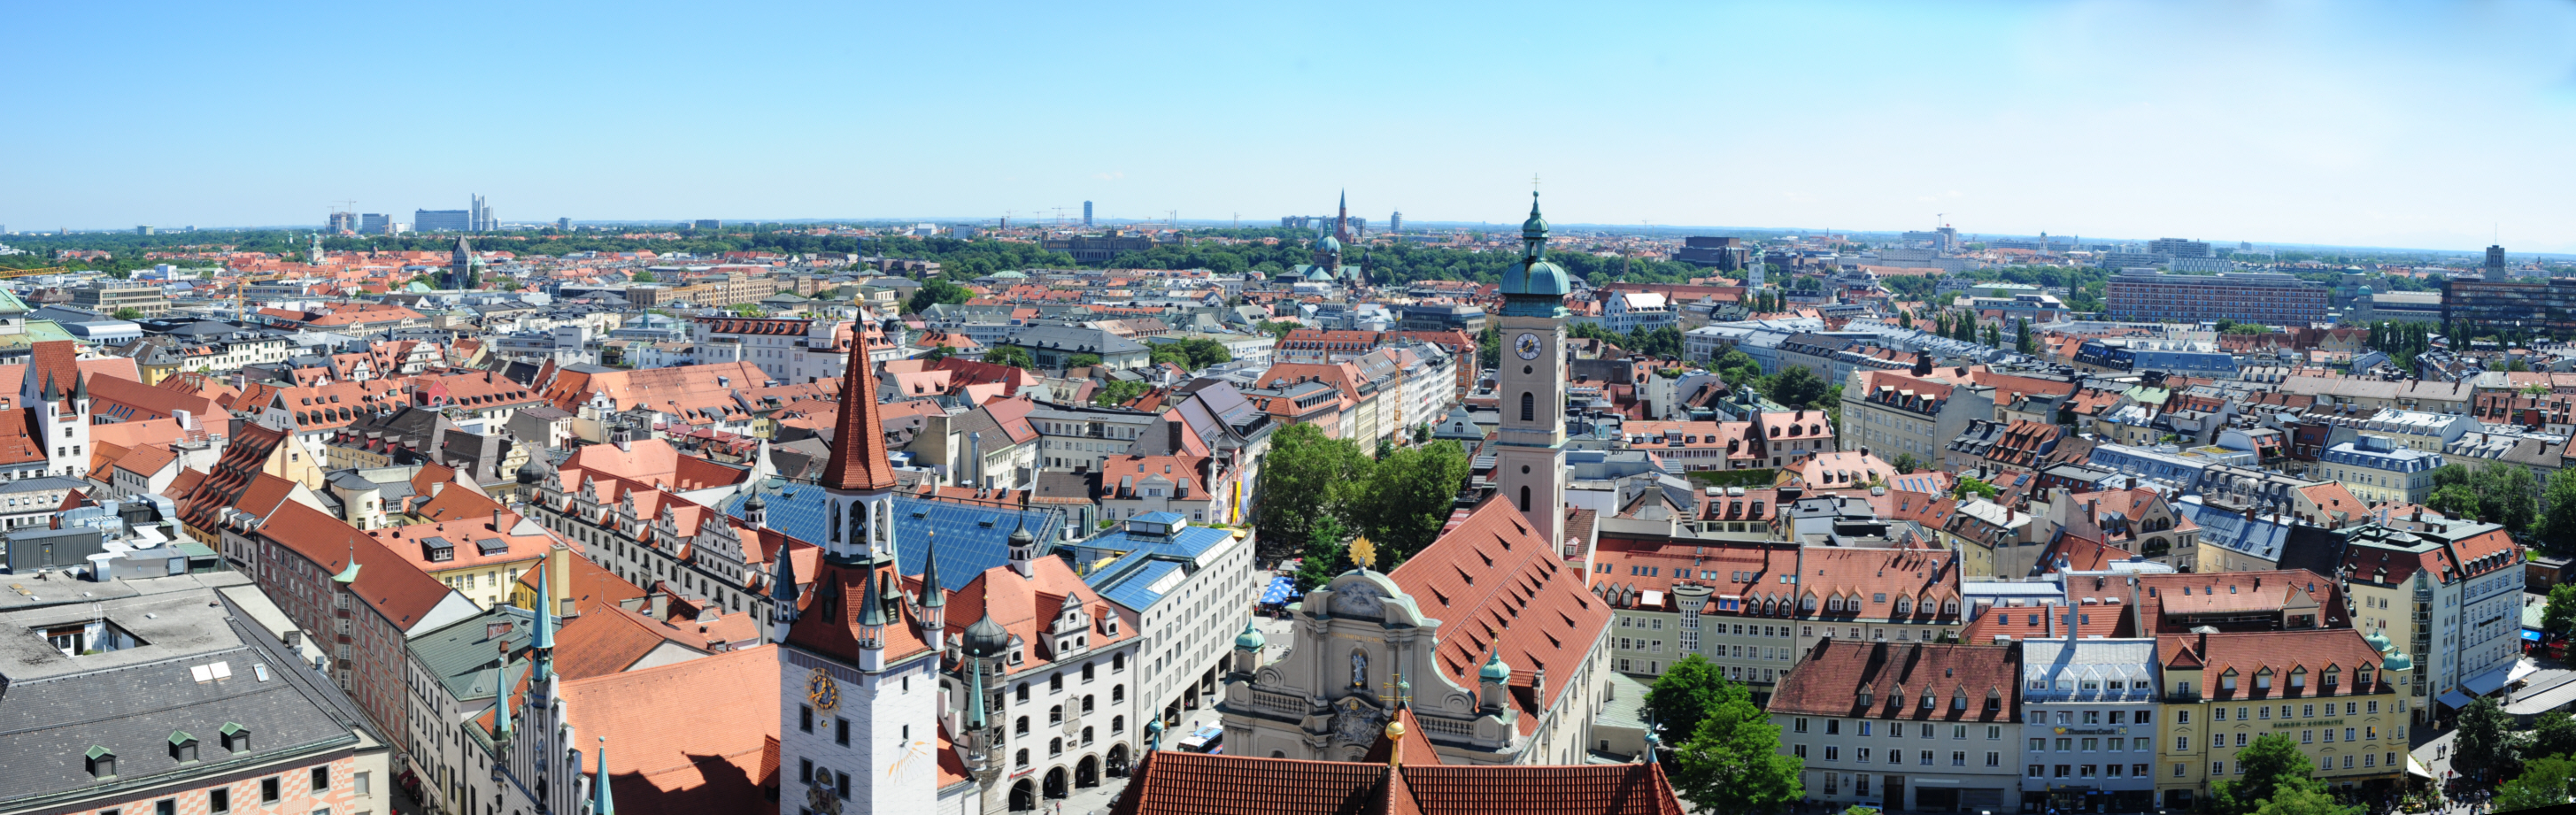 View from the tower of St Peter's church, Munich